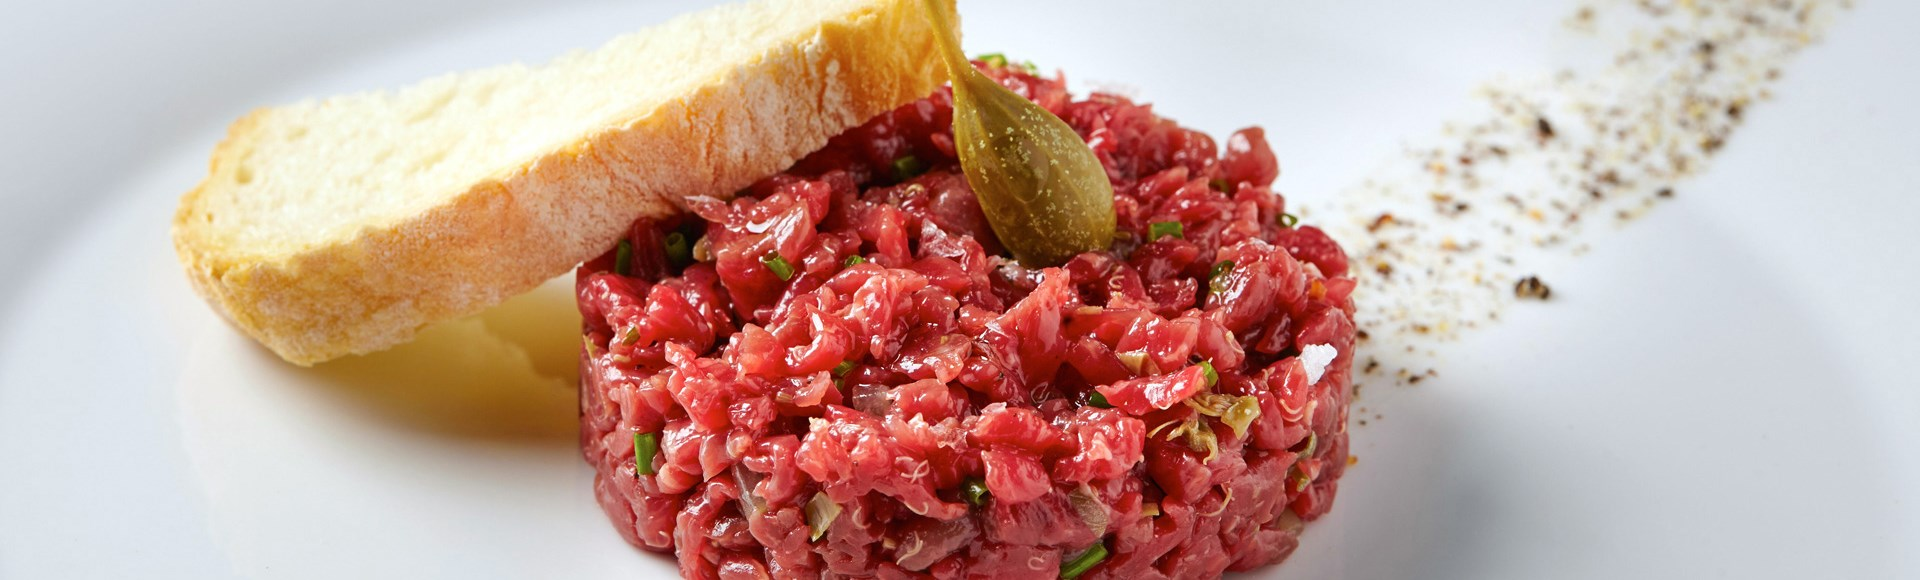 beef-tartar-with-sarawak-pepper-and-white-truffle-oil - Alargo Private Chef Services | Corfu Island - Greece